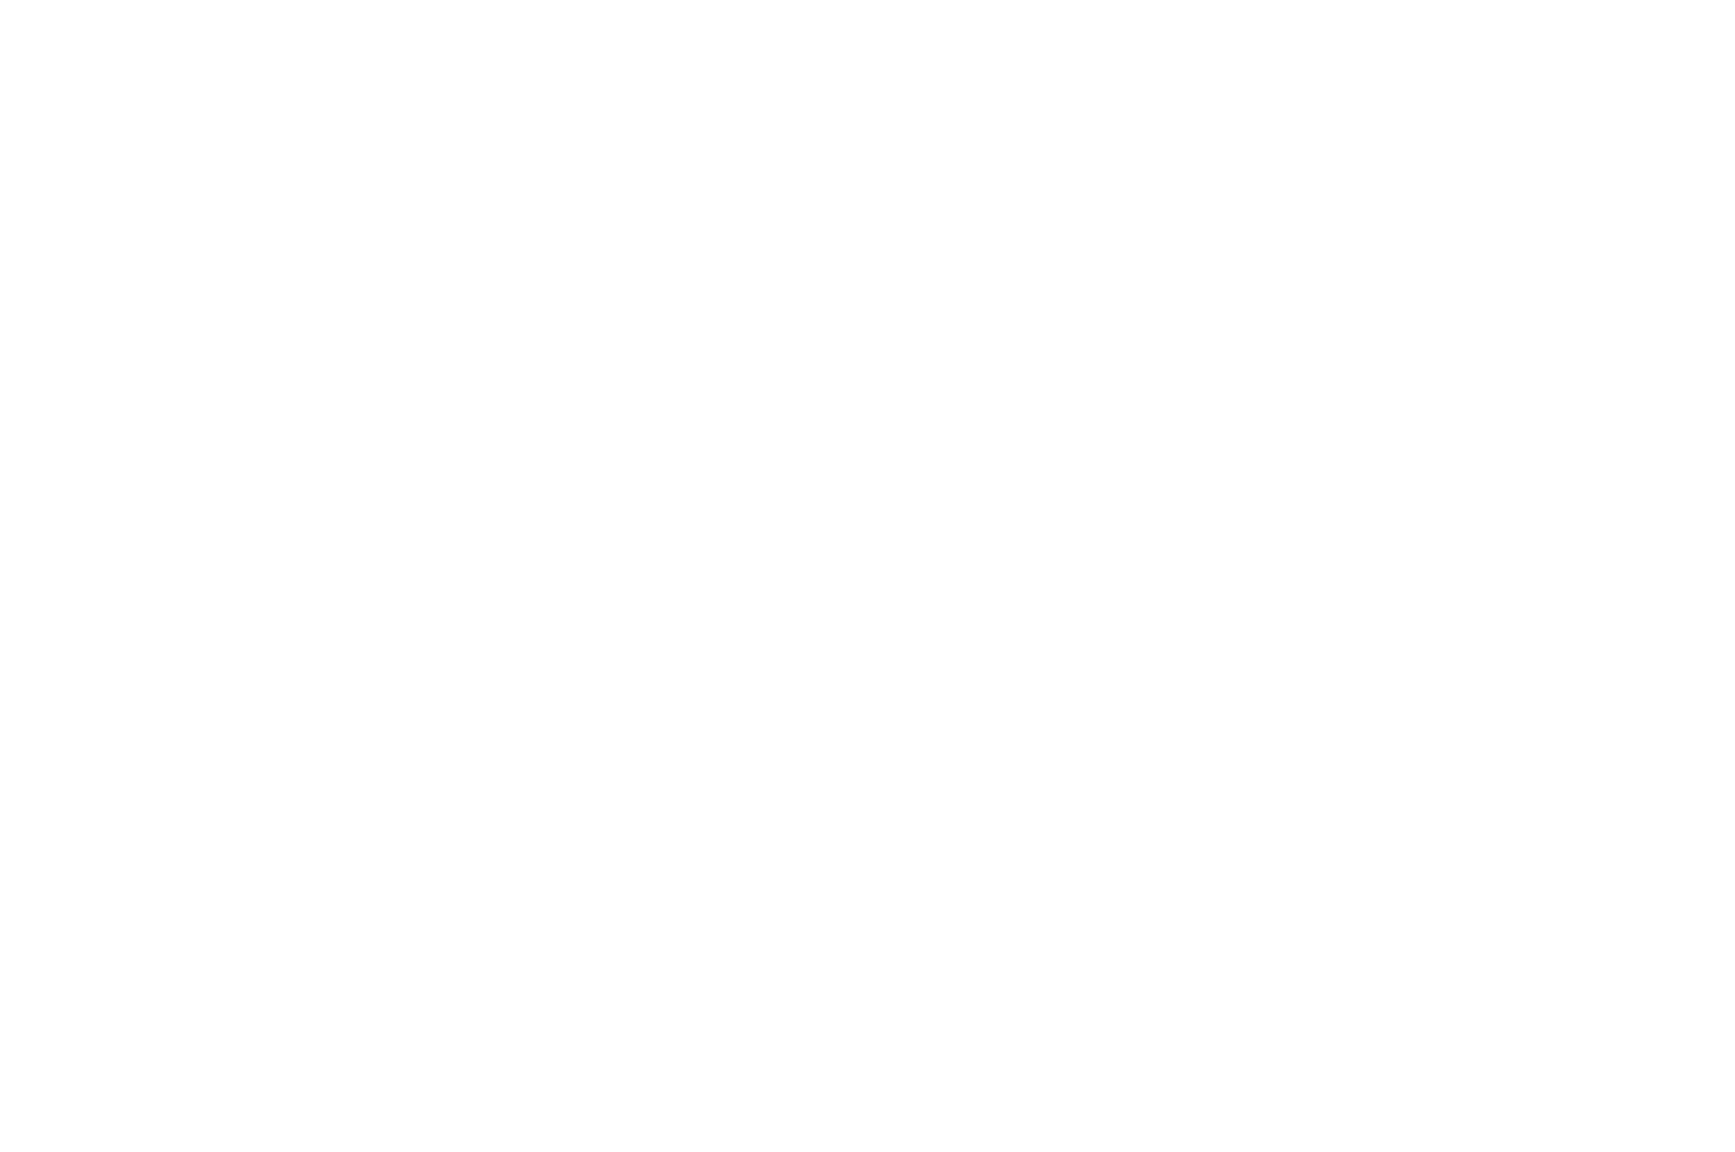 HONORABLE MENTION  - FIRST TIME DIRECTOR  - FESTIGIOUS FILM FESTIVAL 2016 (1).png